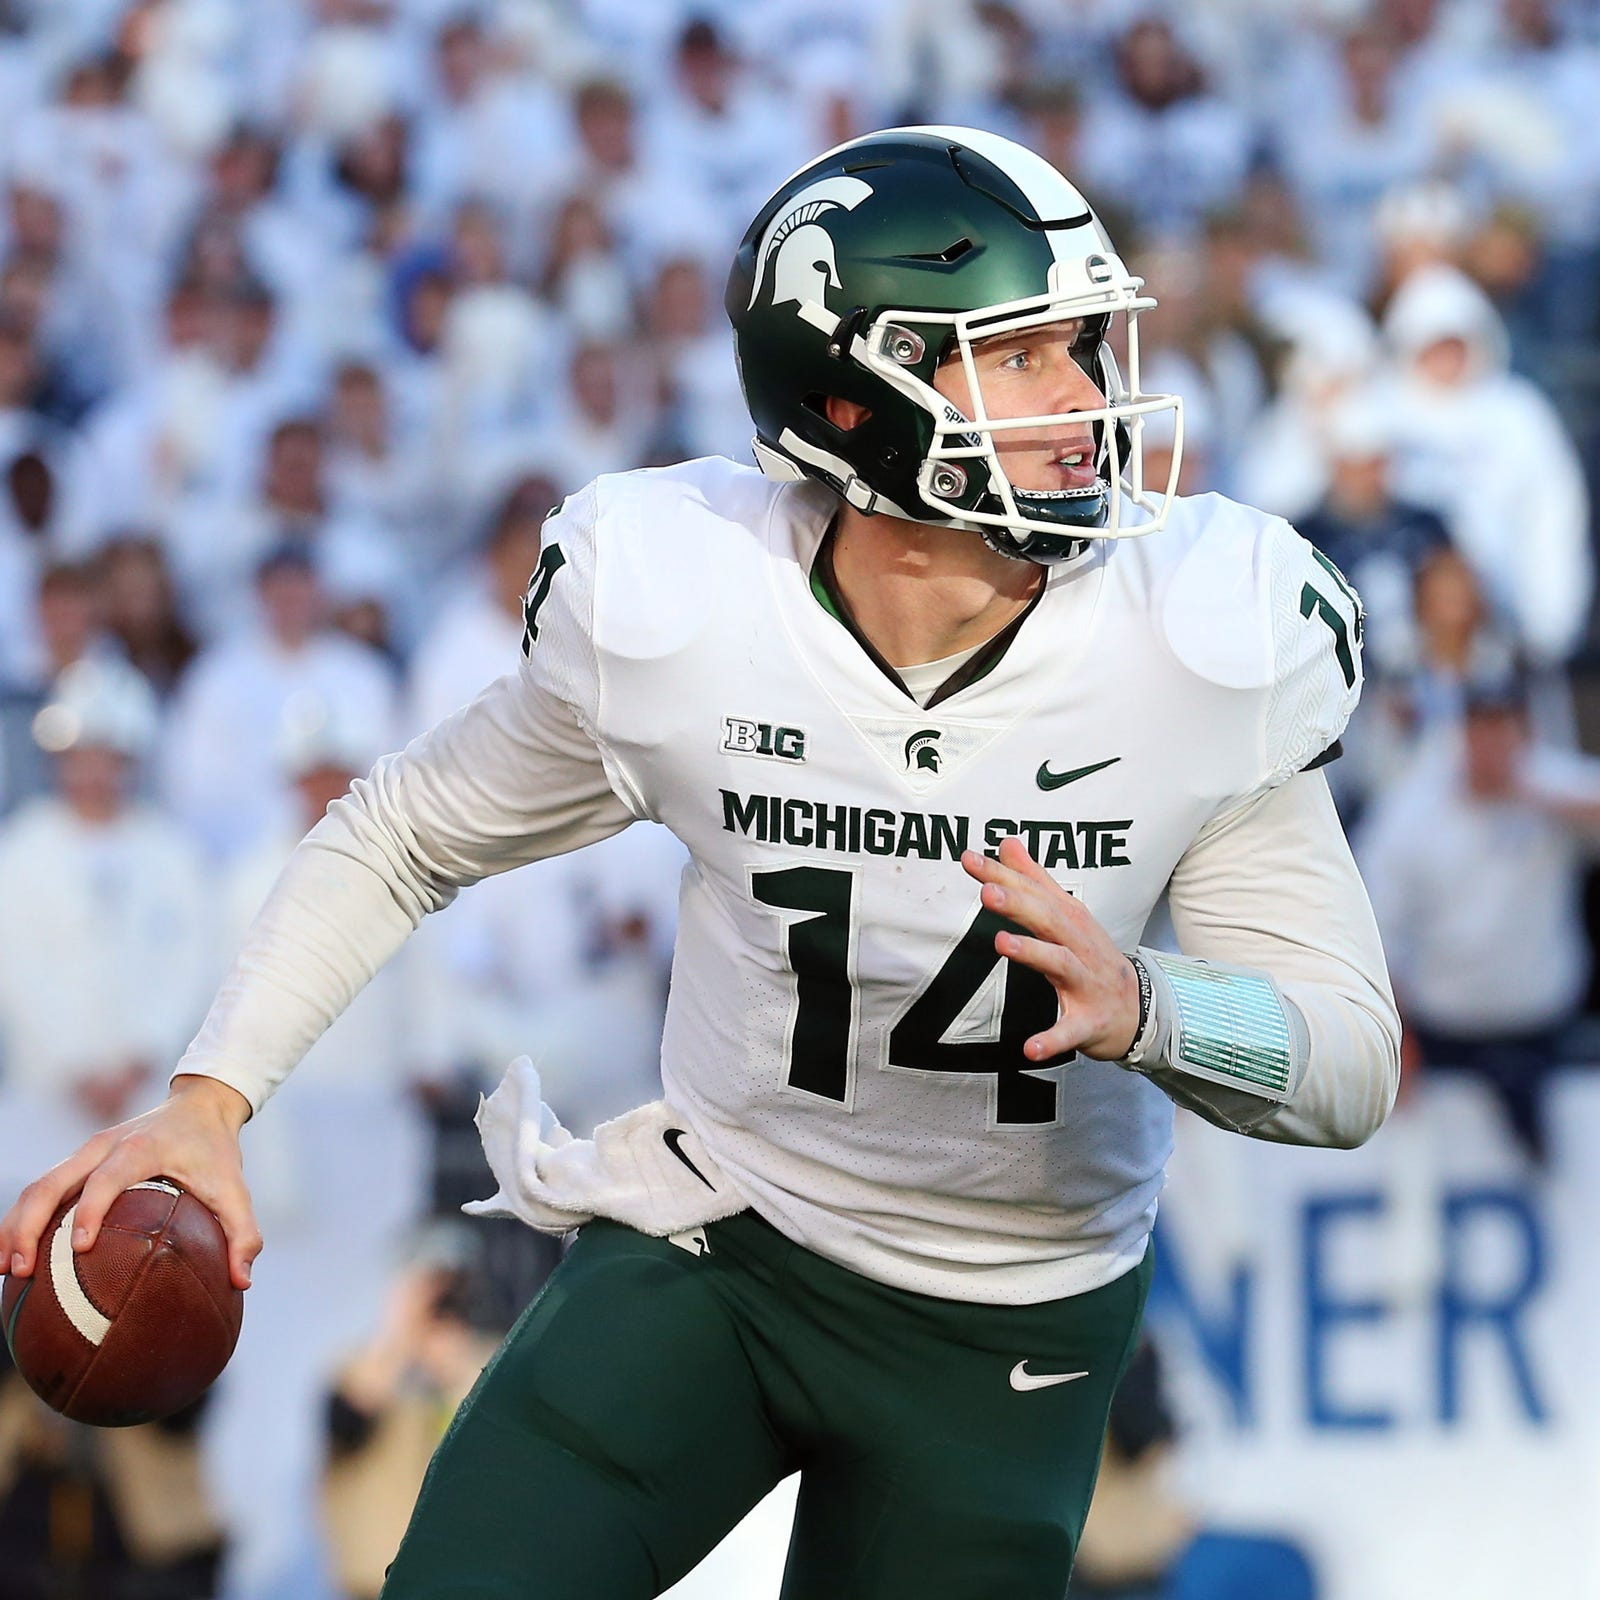 Michigan State's Brian Lewerke now fully aware of Michigan rivalry